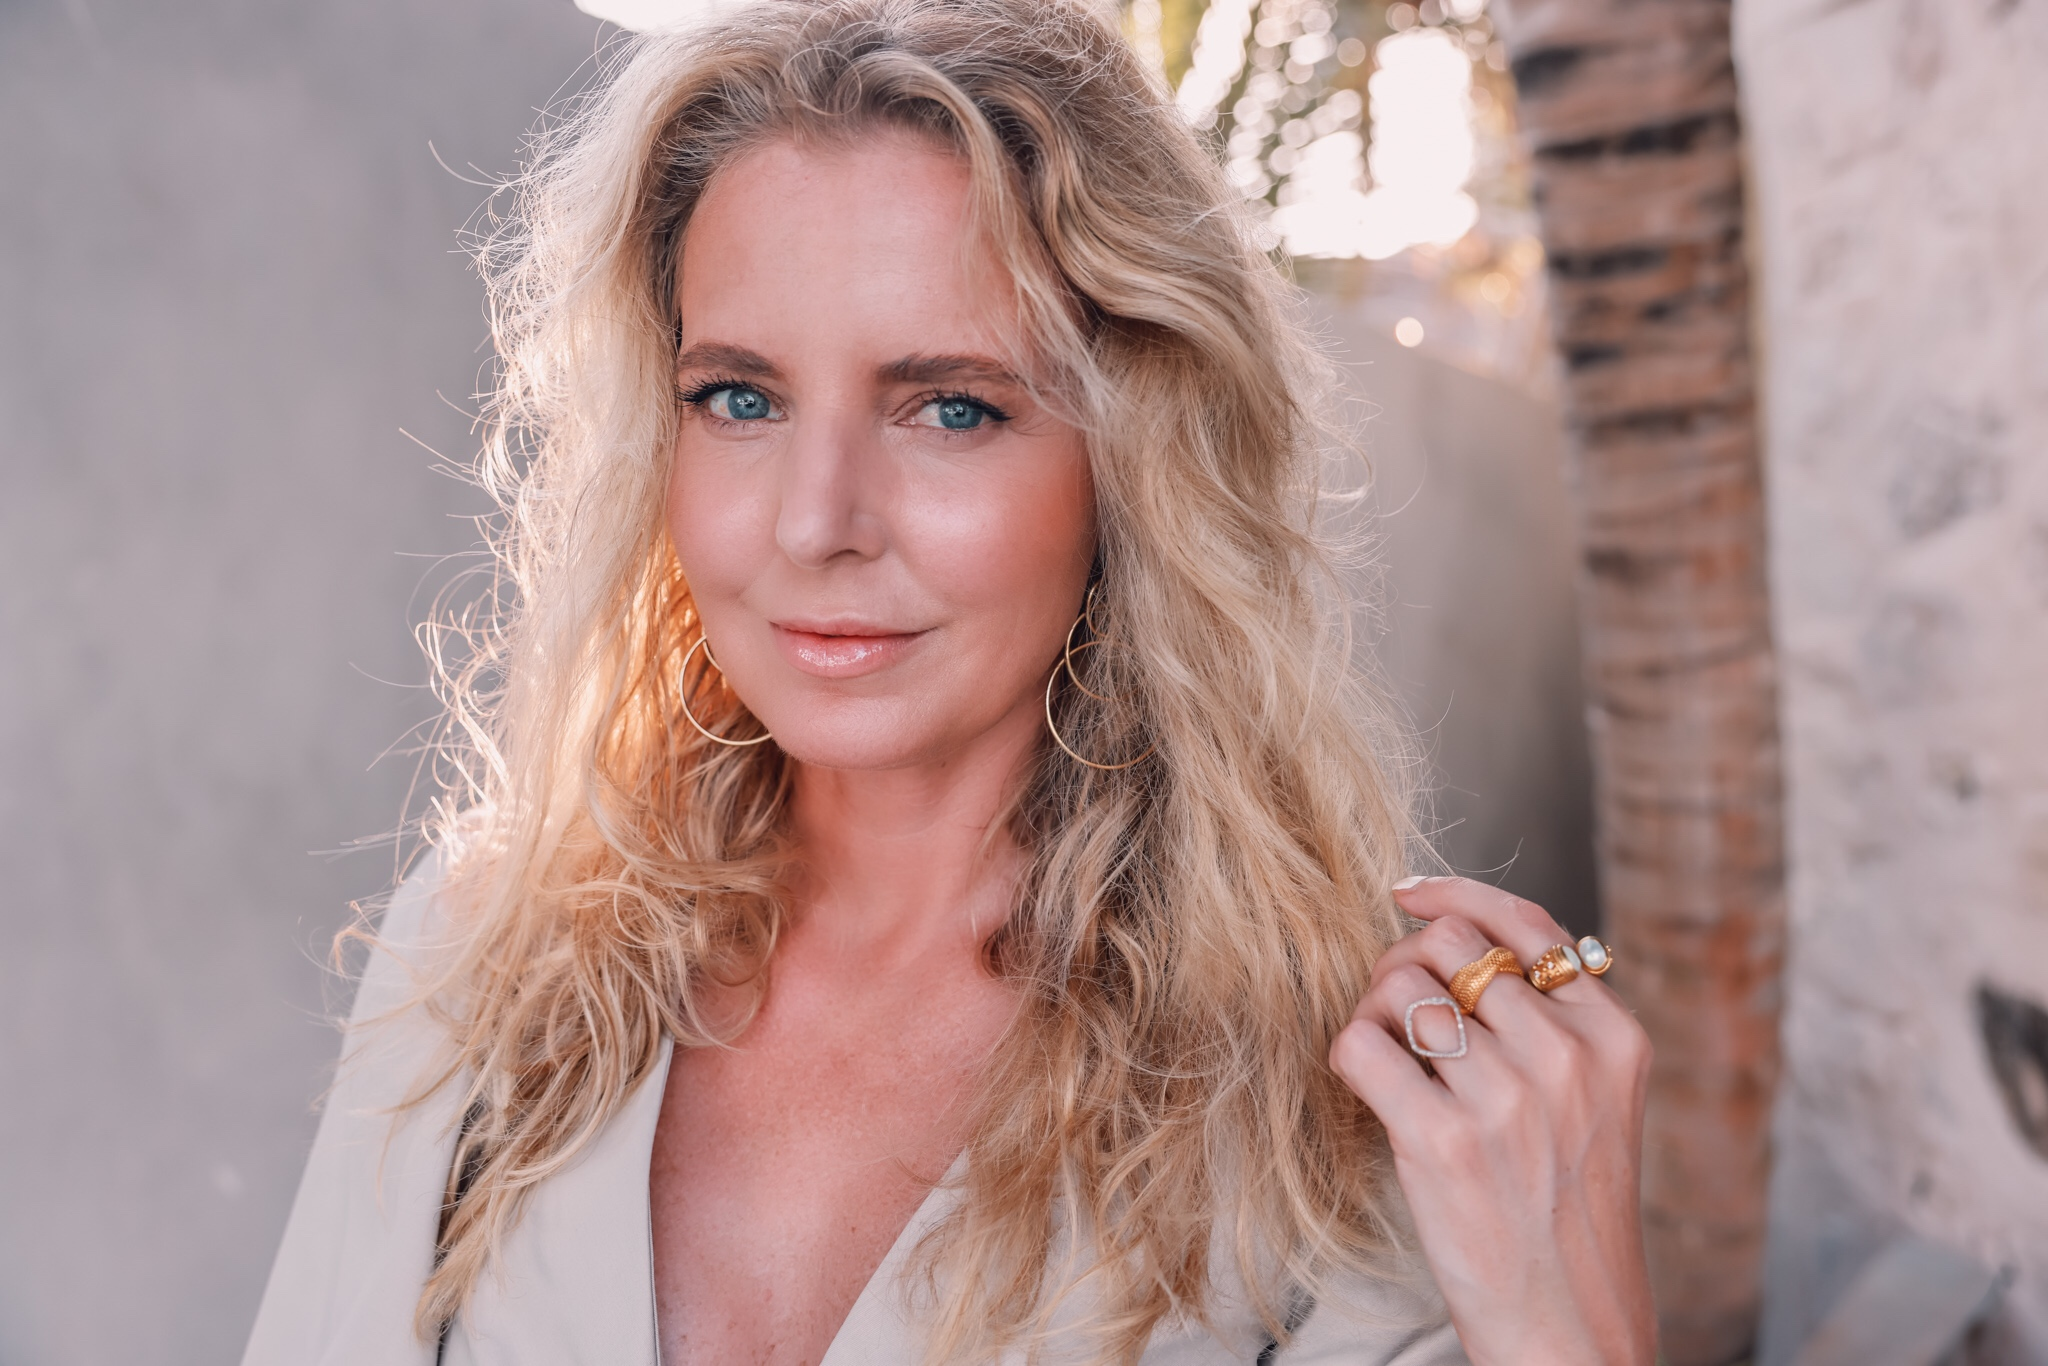 clean summer makeup look, clean summer makeup finds, clean beauty, clean makeup, clean skincare, erin busbee, tulum, mexico, how to get perfect summer makeup, dewy summer makeup, summer makeup over 40, over 40 makeup, clean beauty over 40, clean makeup over 40